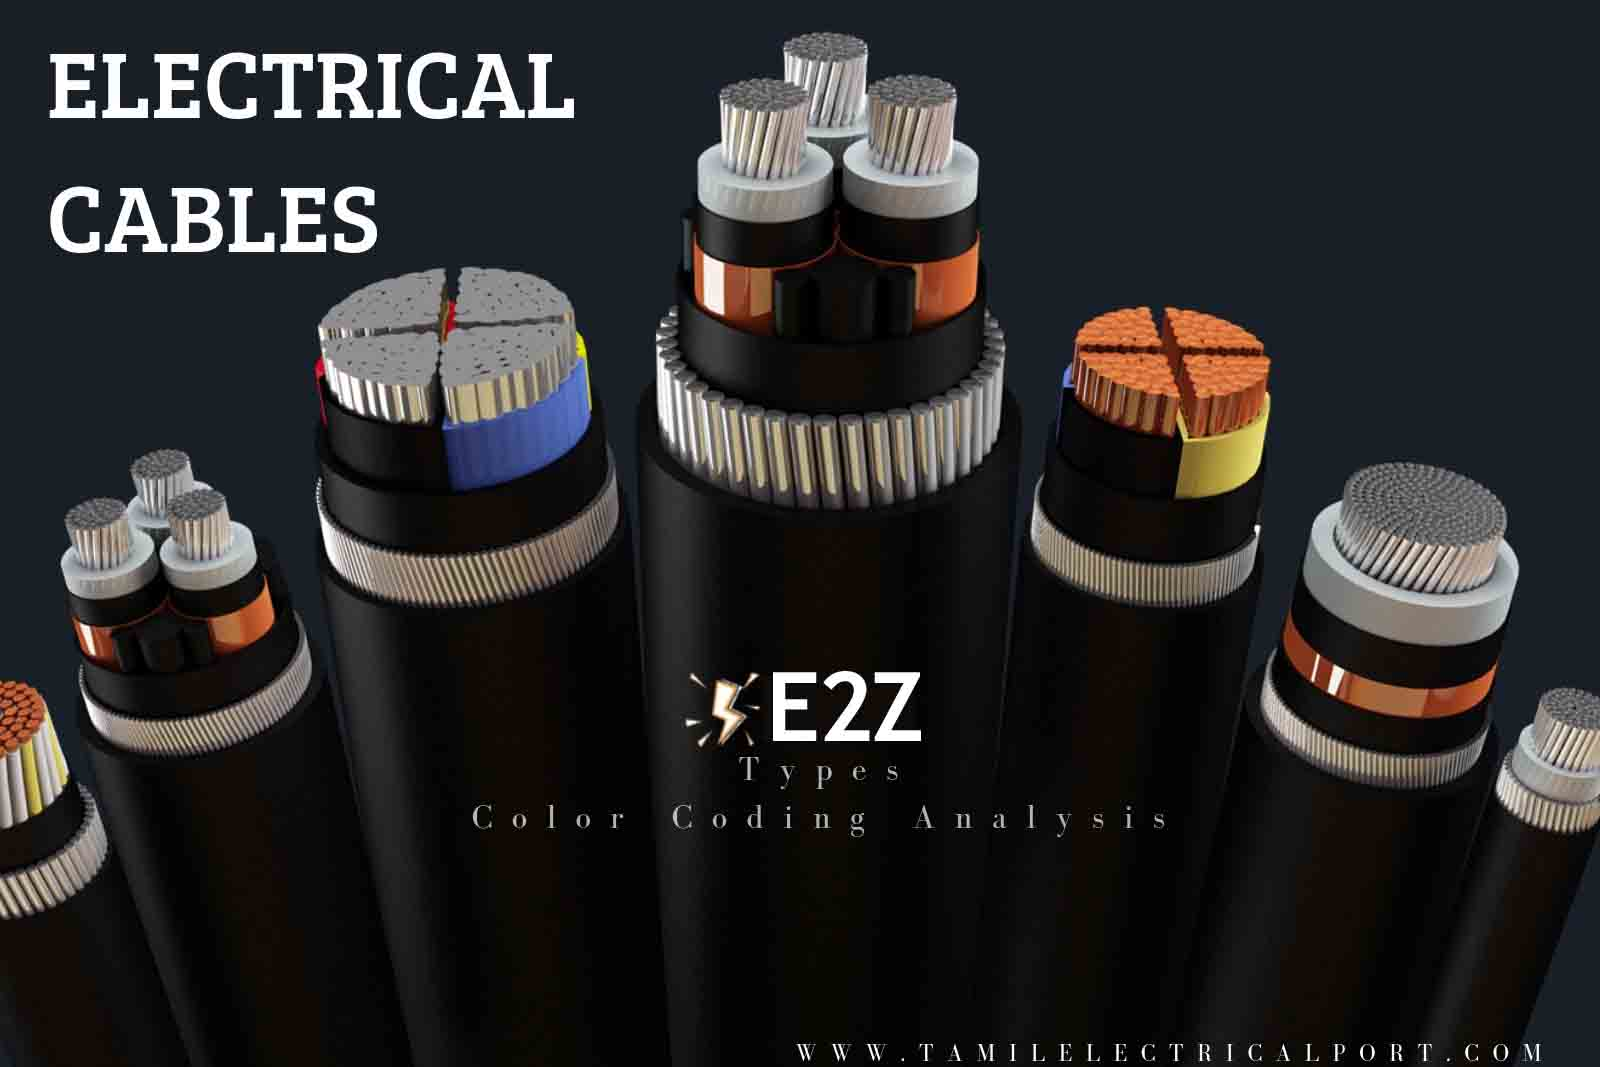 circuit breaker, electrical conduit, types of hoses, distribution board, types of fittings, types of transmission, extension cord, electric power transmission, types of ac outlets, alternating current, types of sniper stocks, knob and tube wiring, junction box, types of software, earthing system, ground and neutral, types of power, types of filters, types of speakers, types of standing seam metal roof, types of appliances, types of service, types of voltage, wiring diagram, types of three, types of circuits, types of motors, national electrical code, power cable, types of painting, types of mirrors, home wiring, types of plugs, electric motor, electrical engineering, three-phase electric power, types of walls, on types of wiring